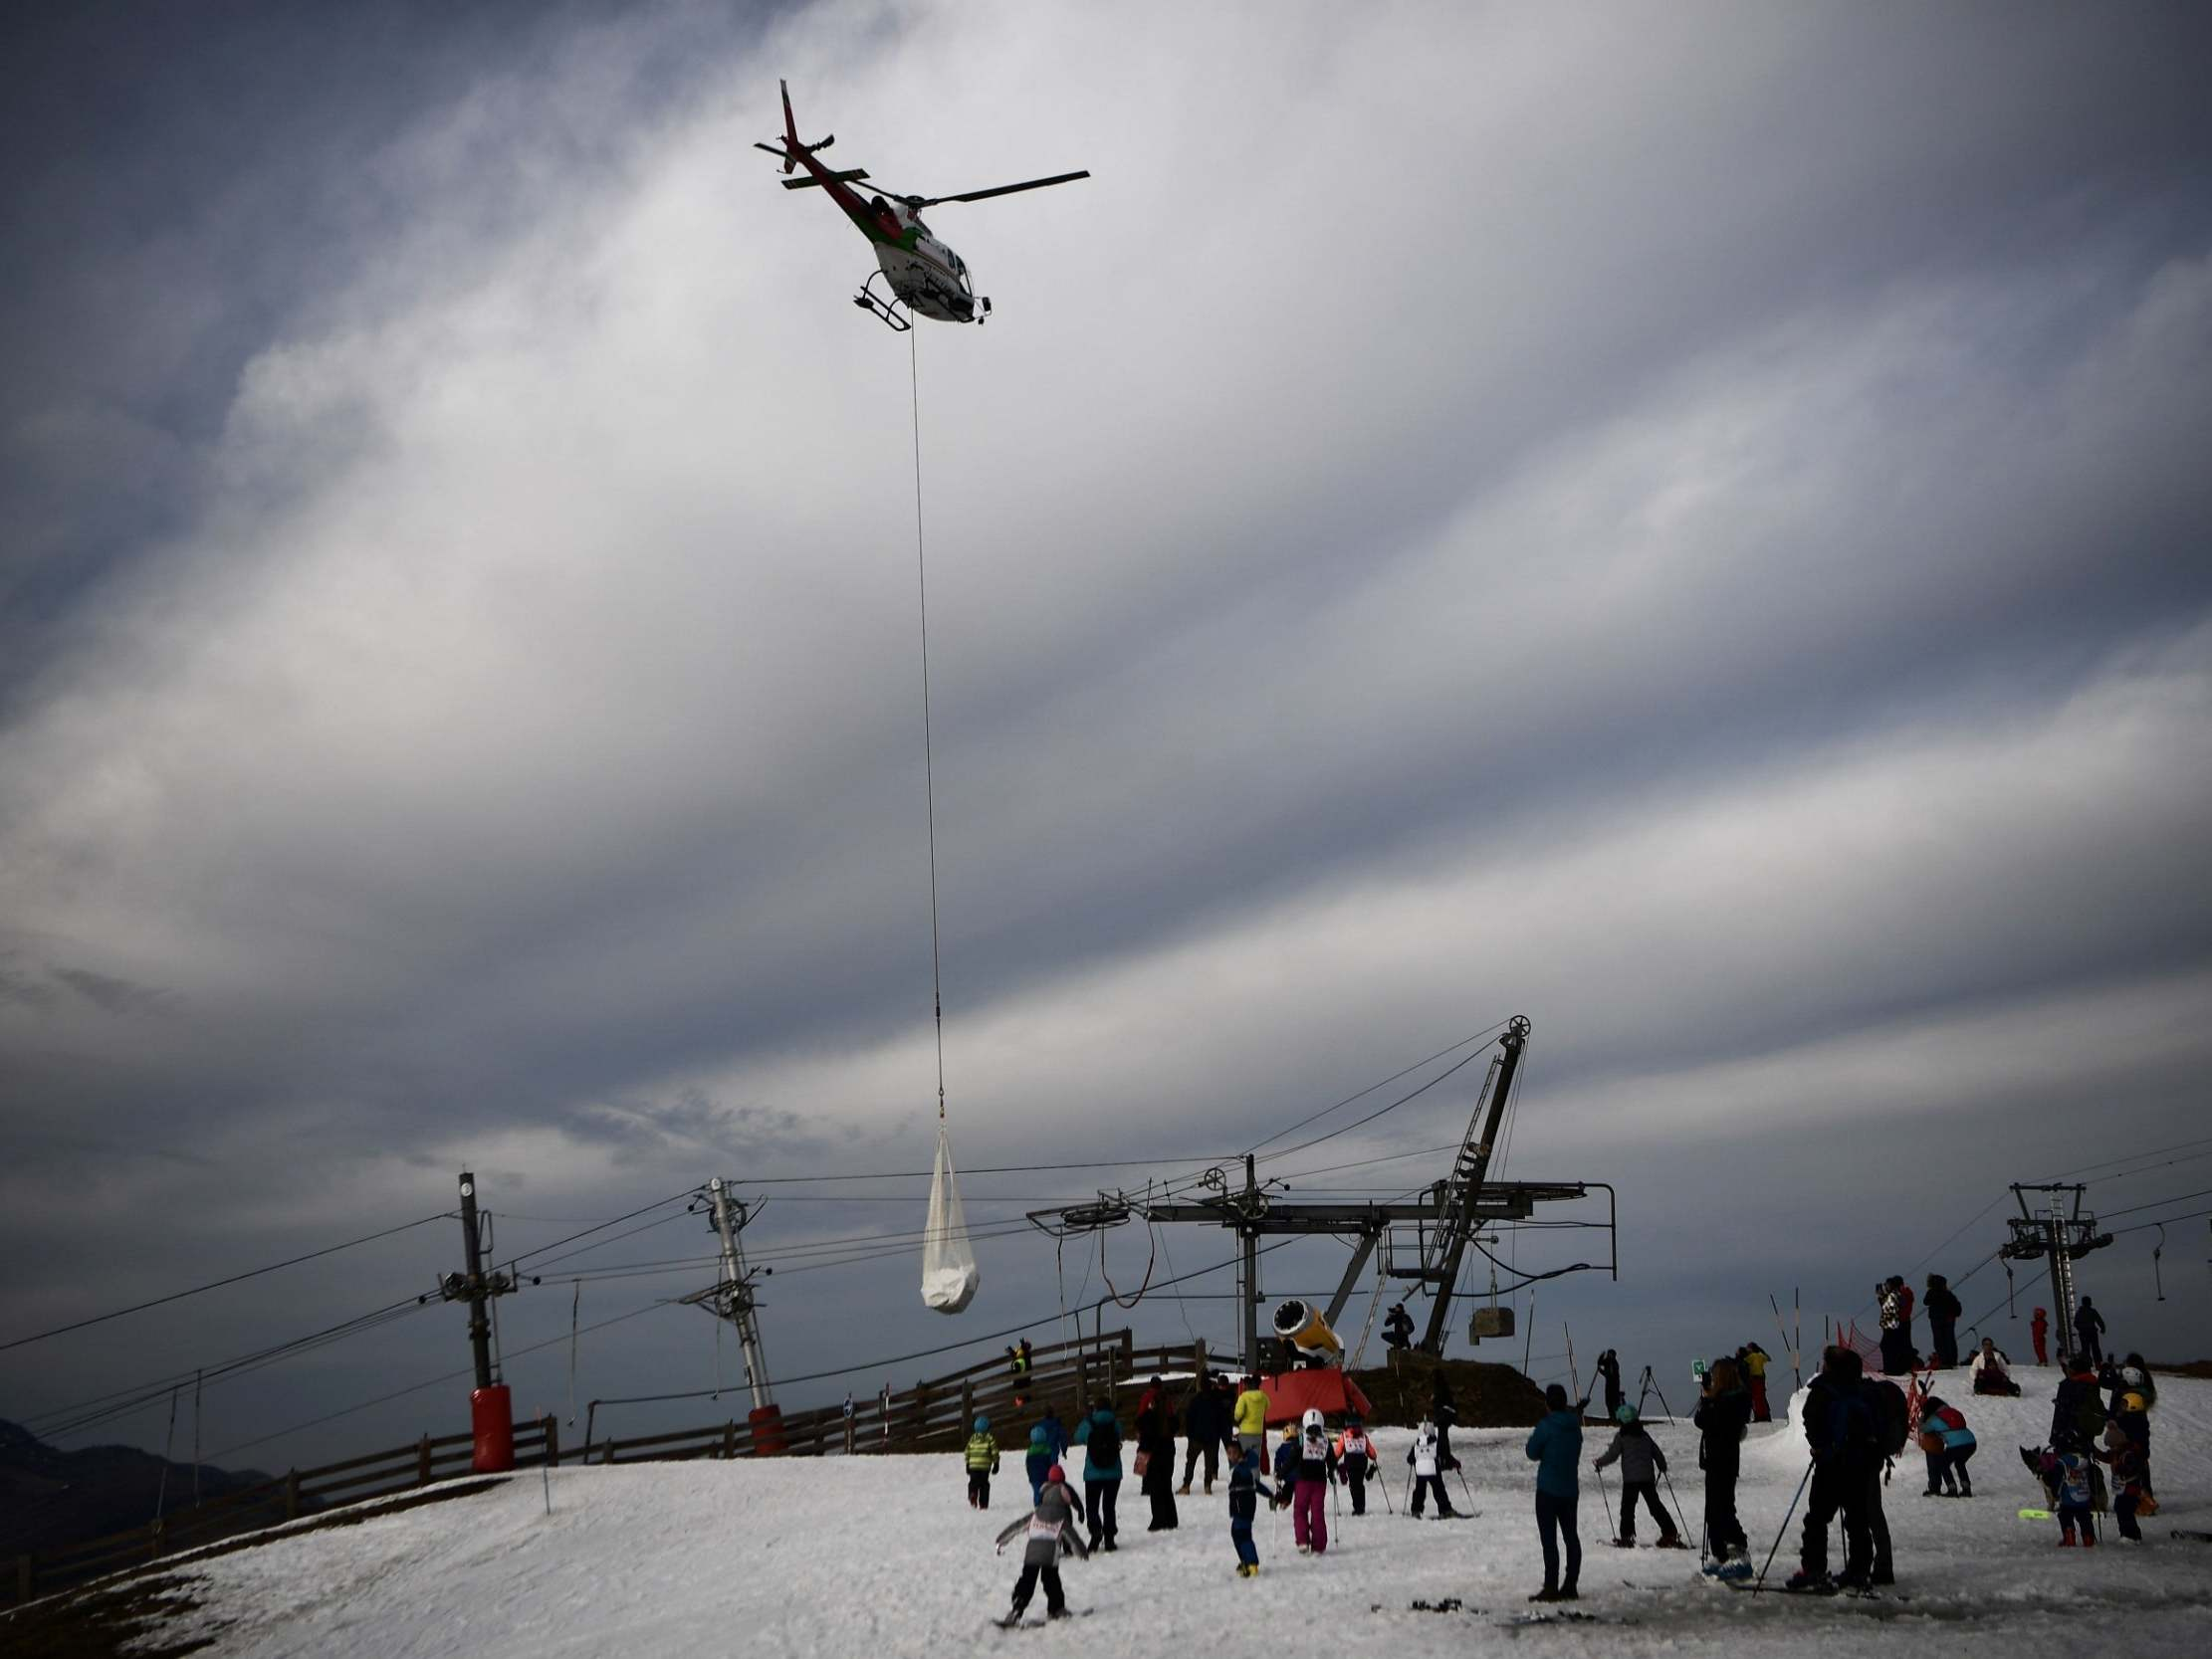 Outrage as French ski resort drops snow by helicopter after pistes melt